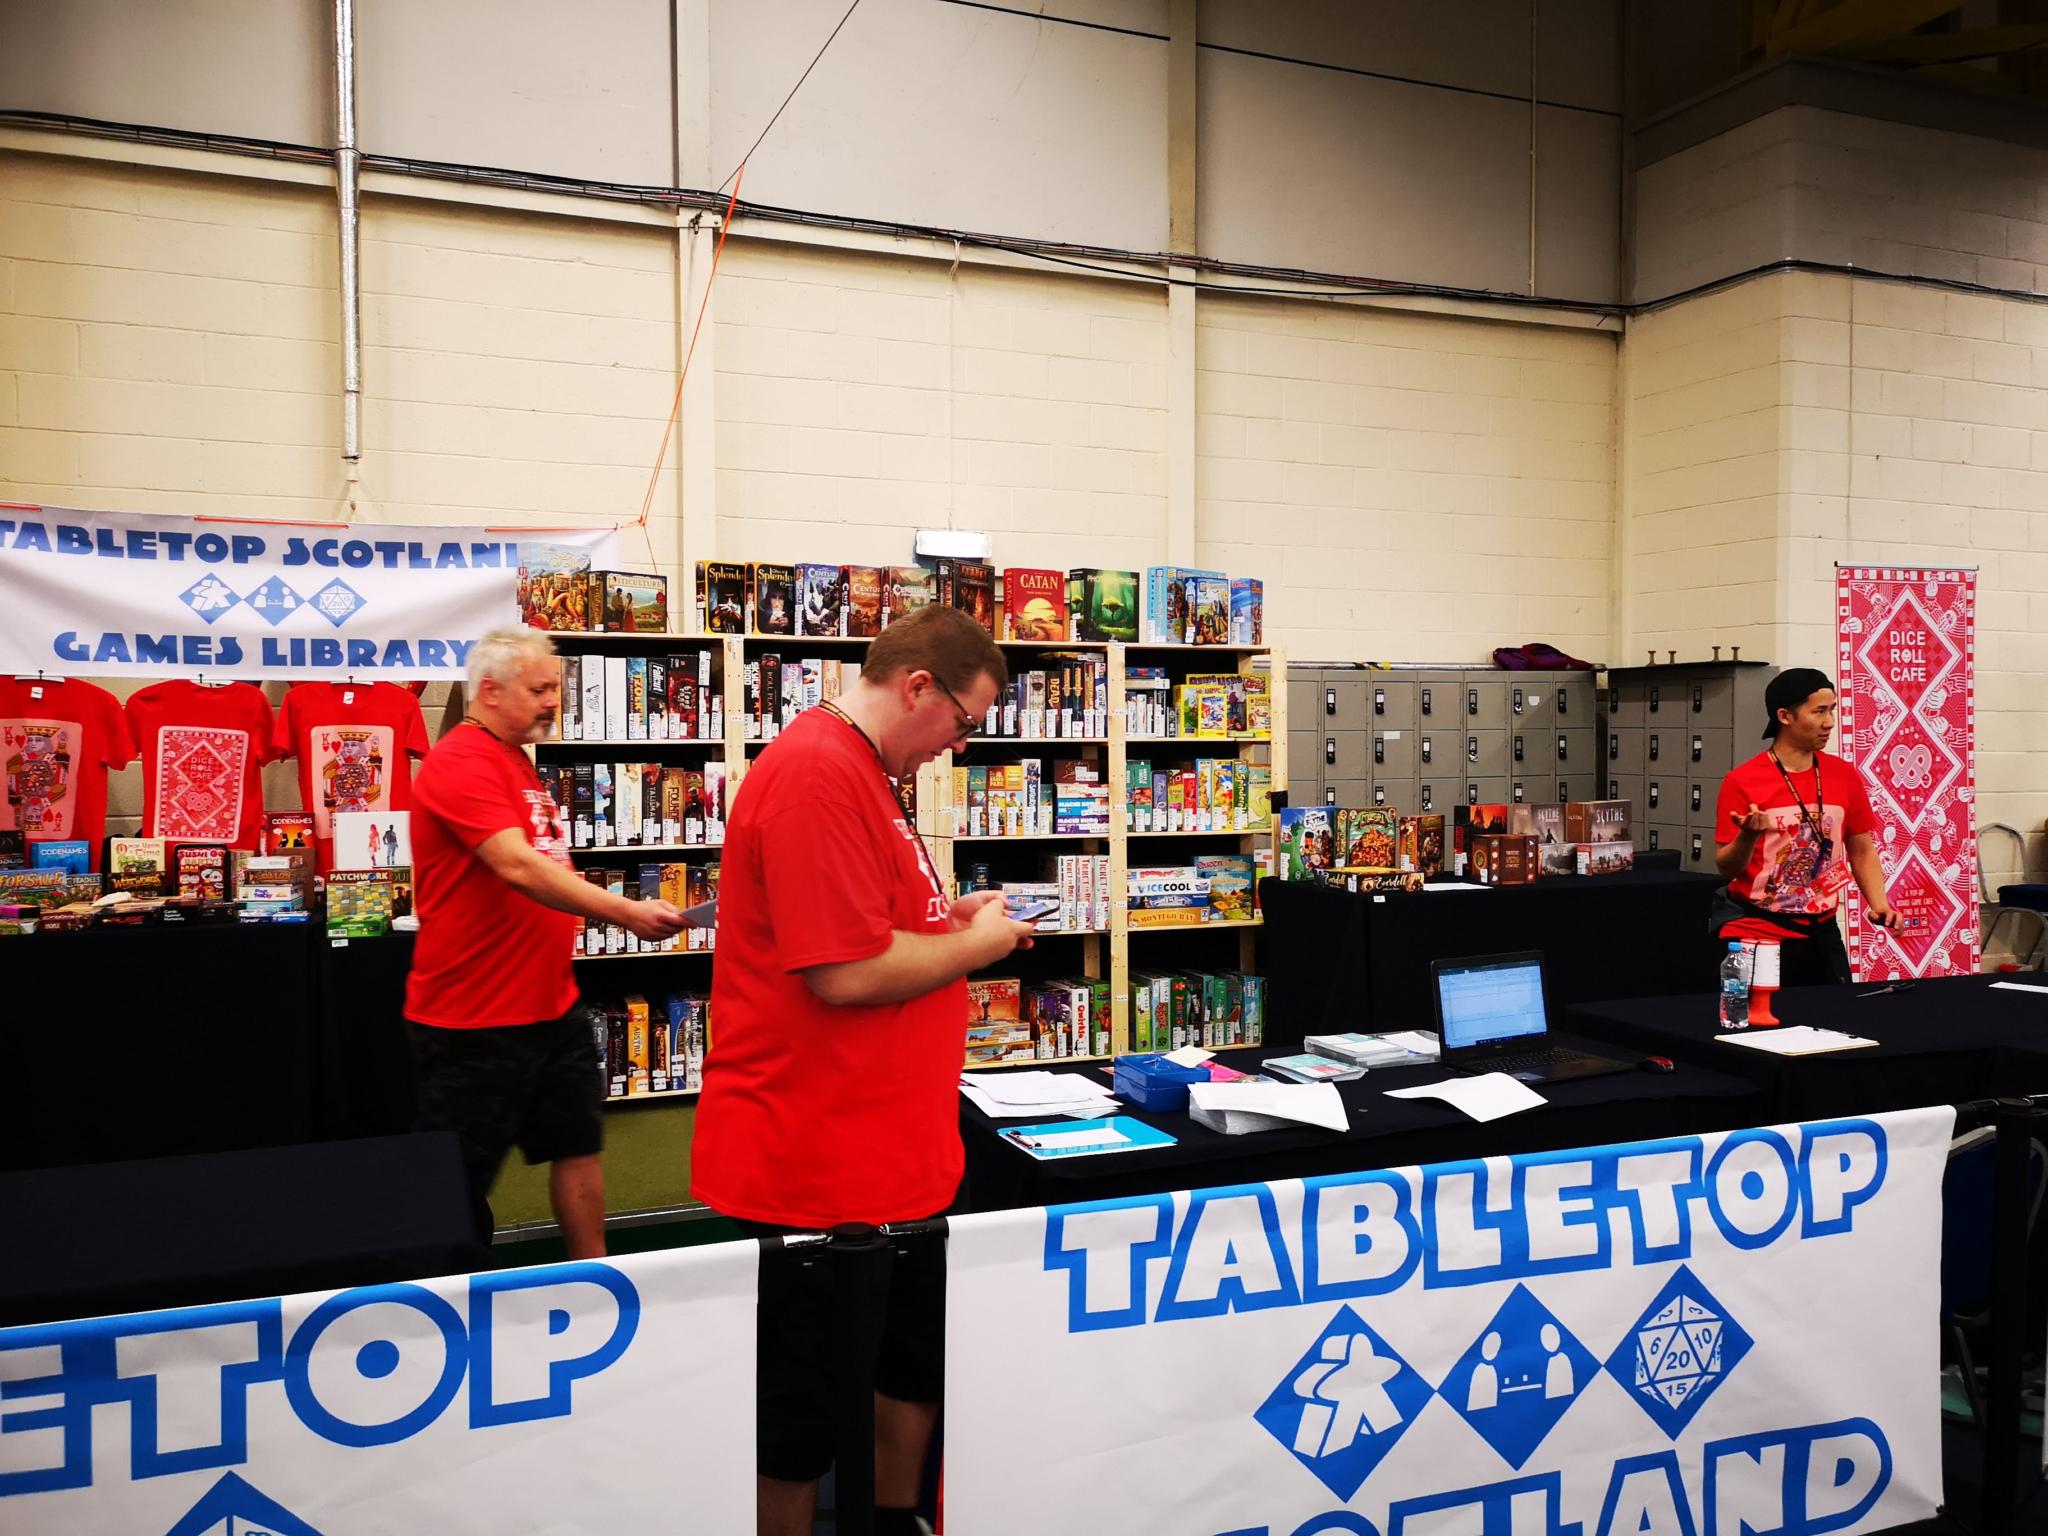 Board game library at Tabletop Scotland